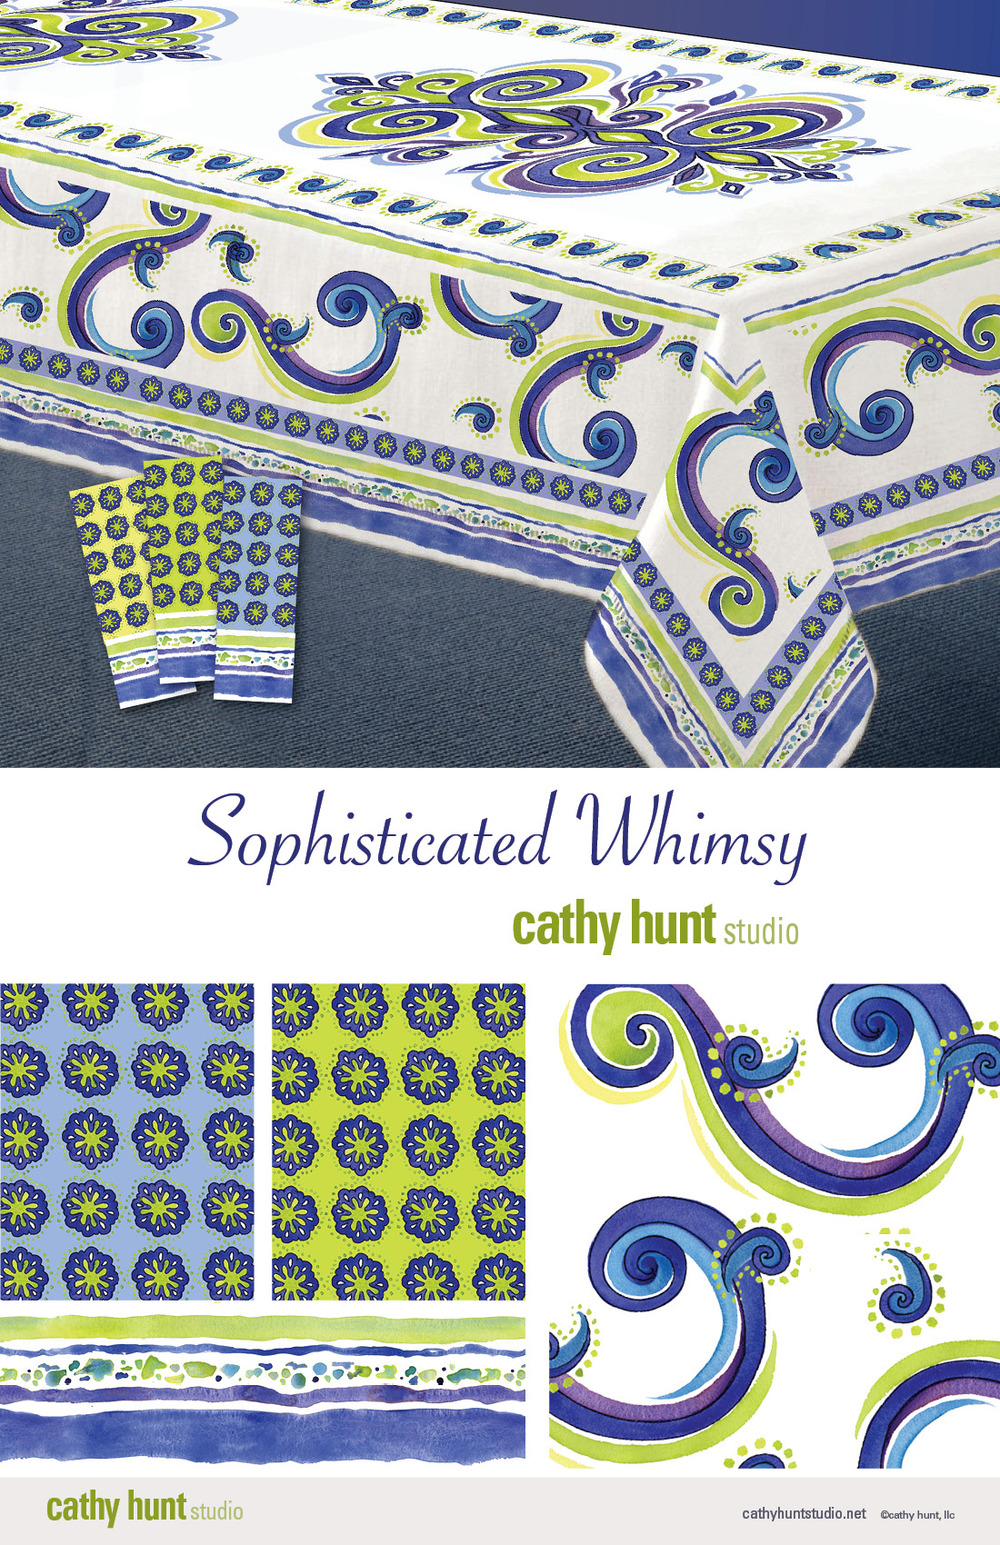 SW001_Sophisticated-Whimsy_cathyhunt3.jpg